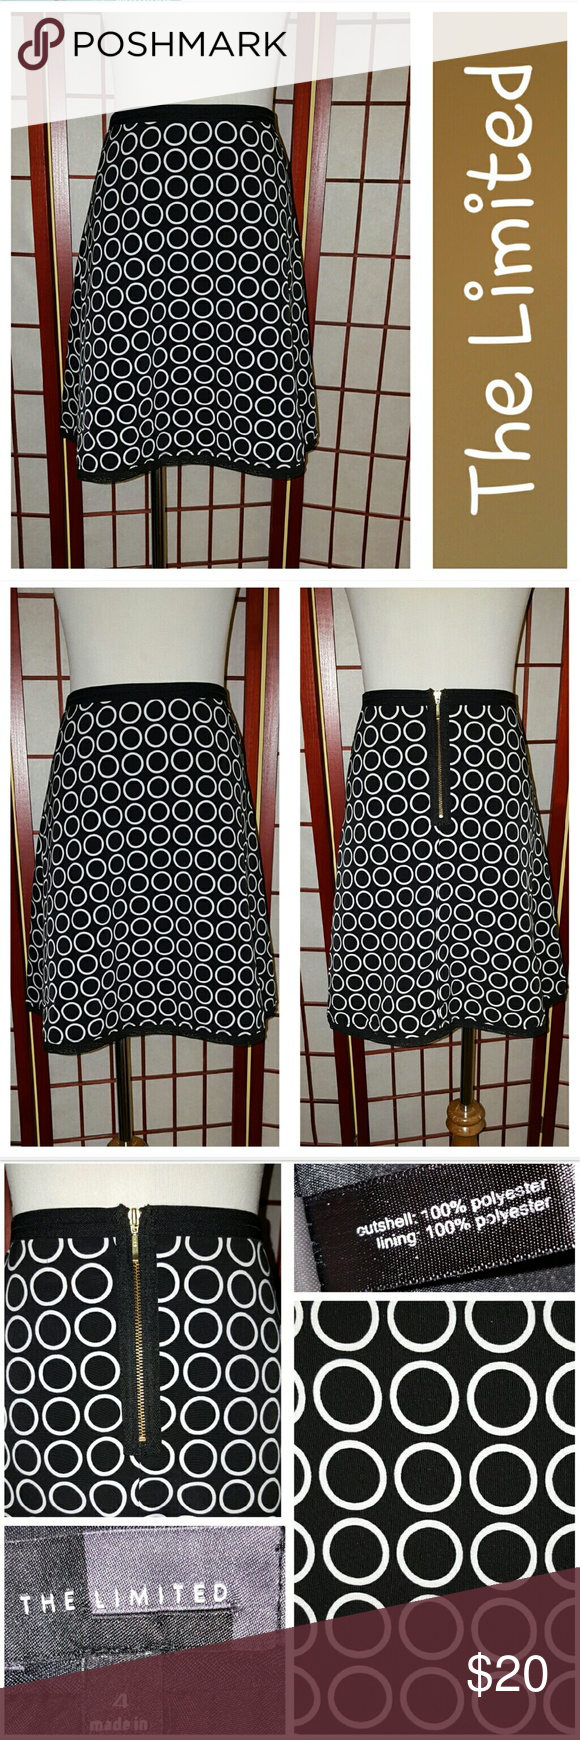 The Limited Skirt! Super cute a line skirt from The Limited.  Black with white circles.  Exposed back zipper.  Fully lined.  Black lace detail at hemline.  Sz 4.  Waist 28in, length 18in.  EUC.  No stains or tears.  From smoke free home. The Limited Skirts A-Line or Full